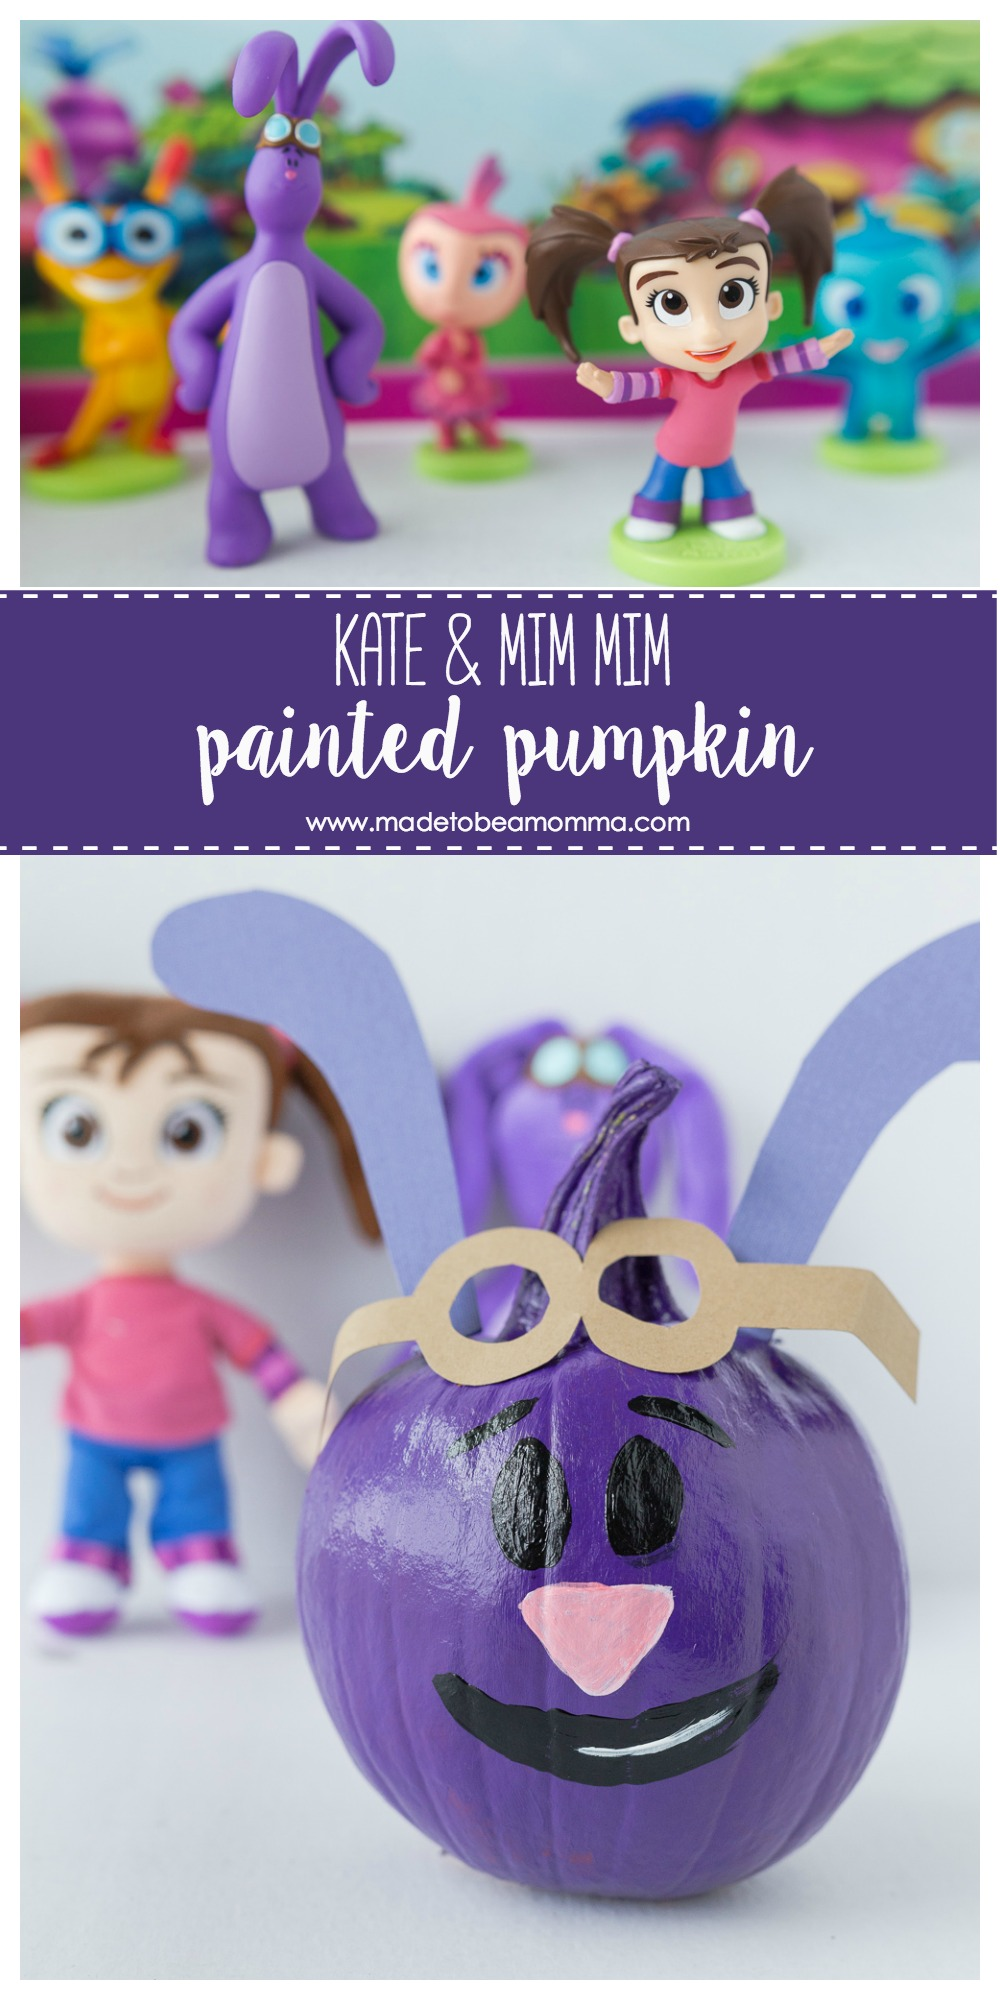 Kate & Mim Mim Pumpkin: a fun painted Mim Mim pumpkin the kids can enjoy! www.madetobeamomma.com